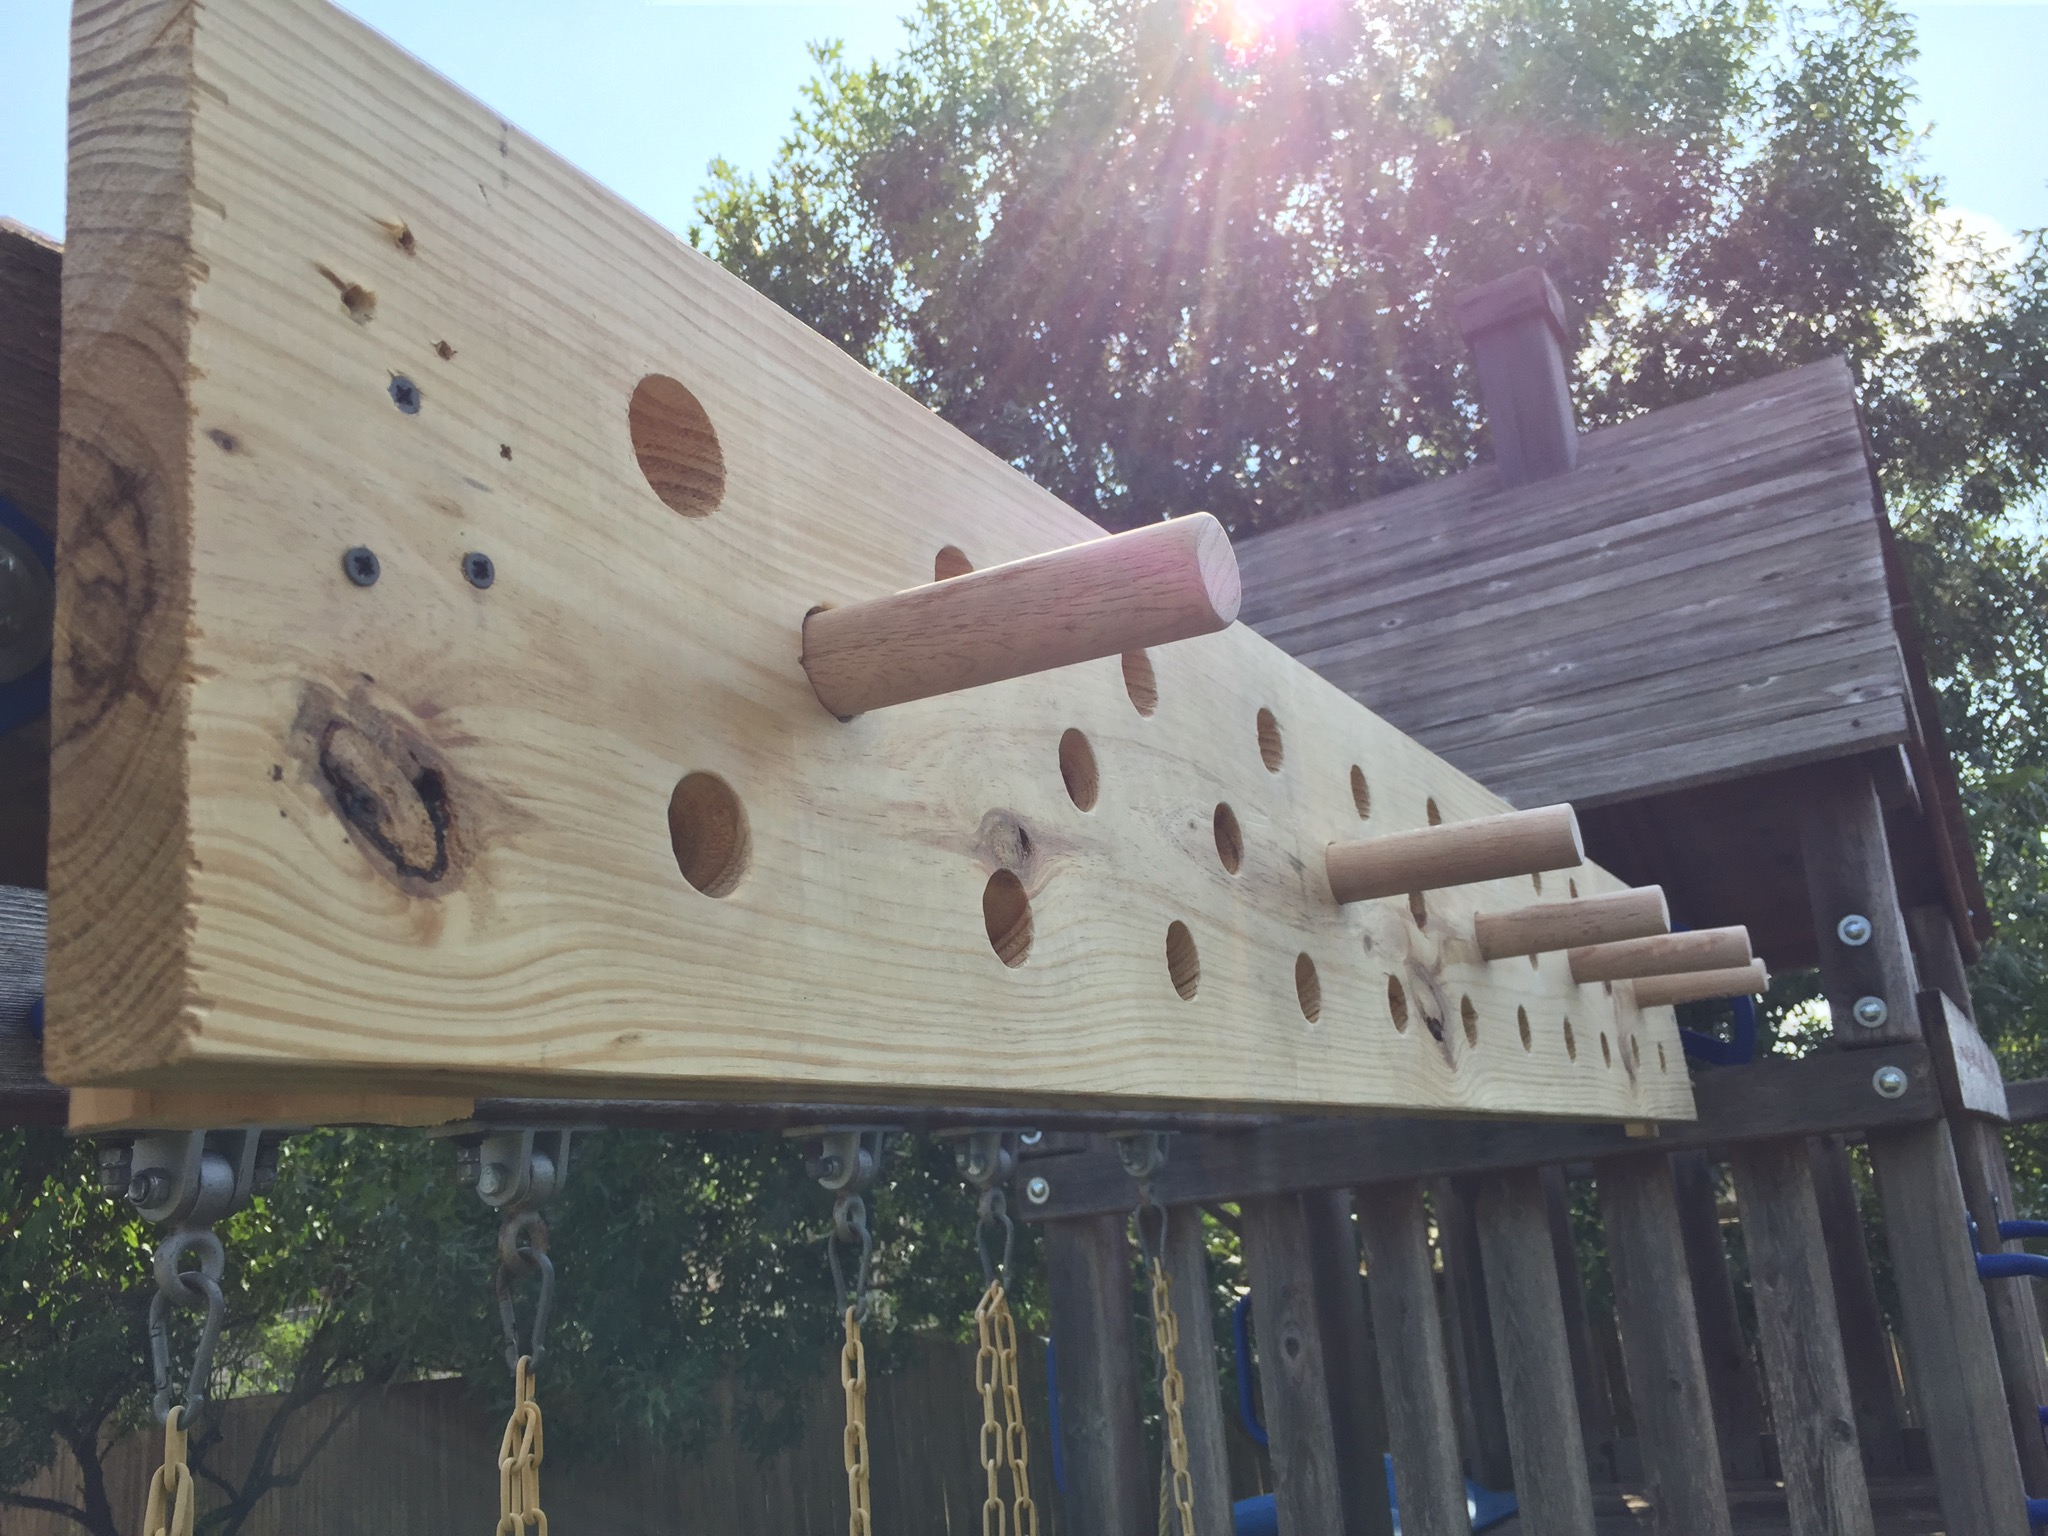 Diy Pegboard For Exercise Like American Ninja Warrior